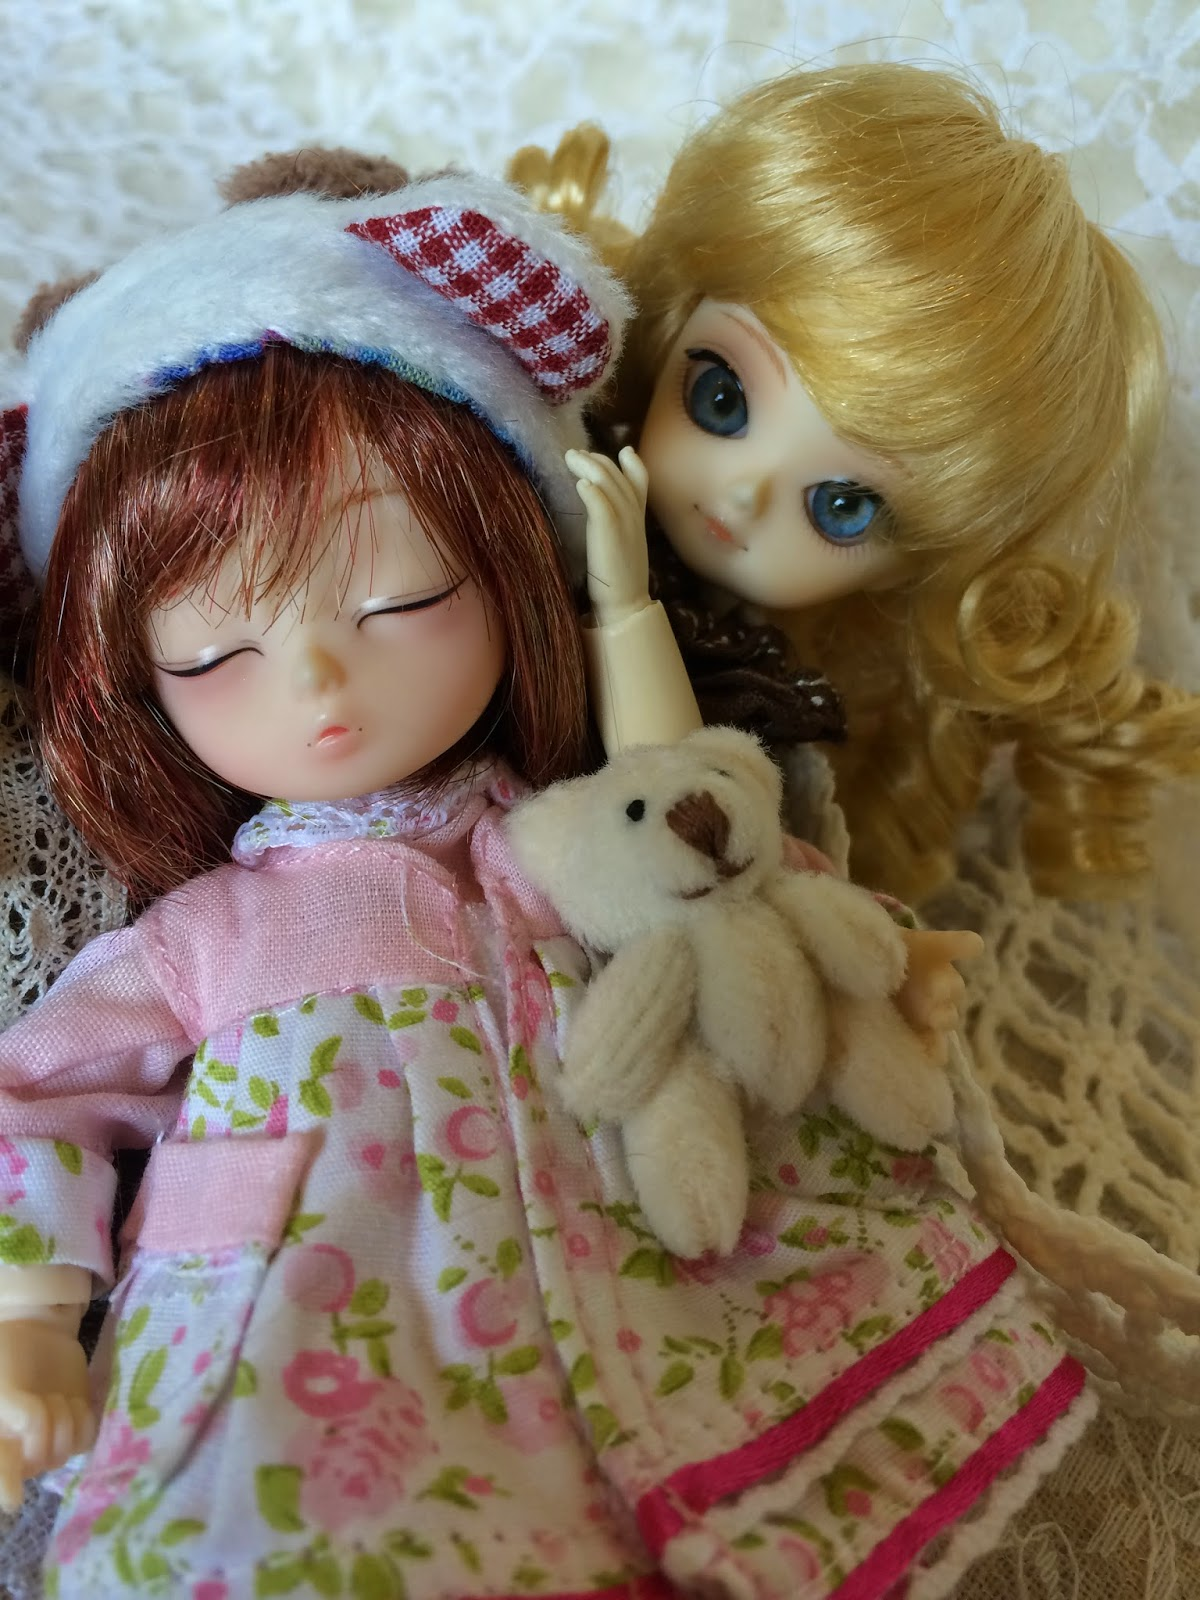 Meet-More-New-Ai-BJD's-From-Tuesday-Morning